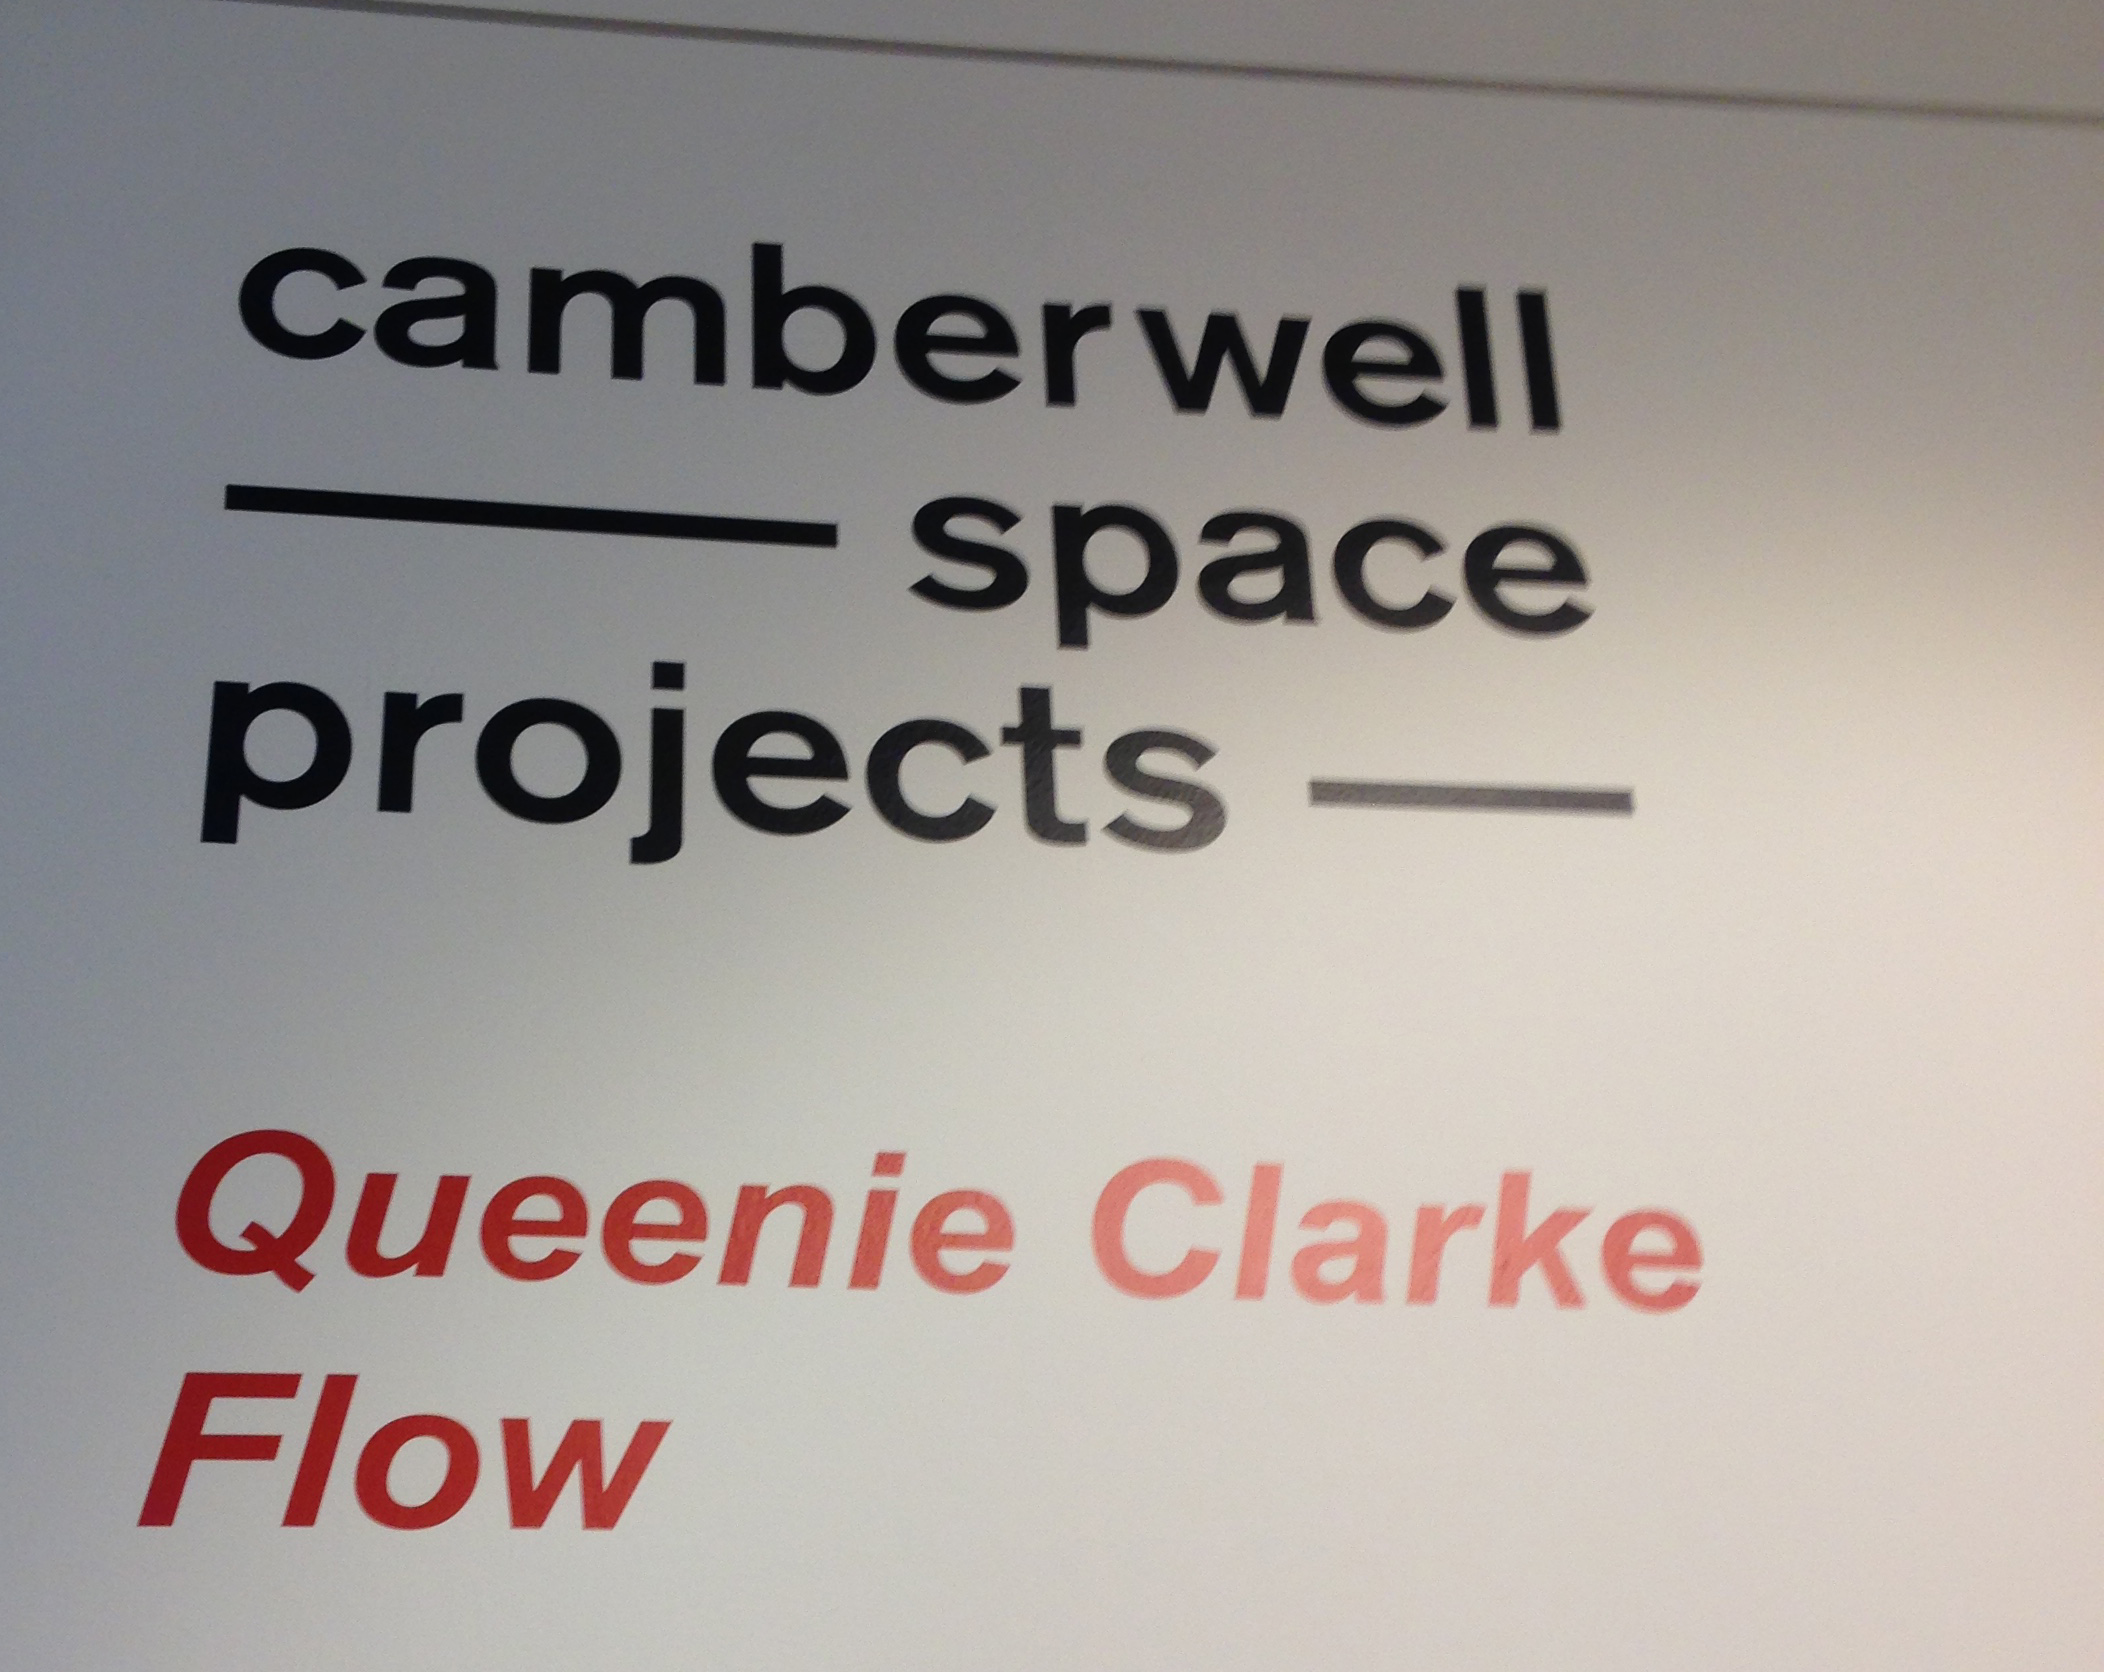 Queenie Clarke at Camberwell Space Projects